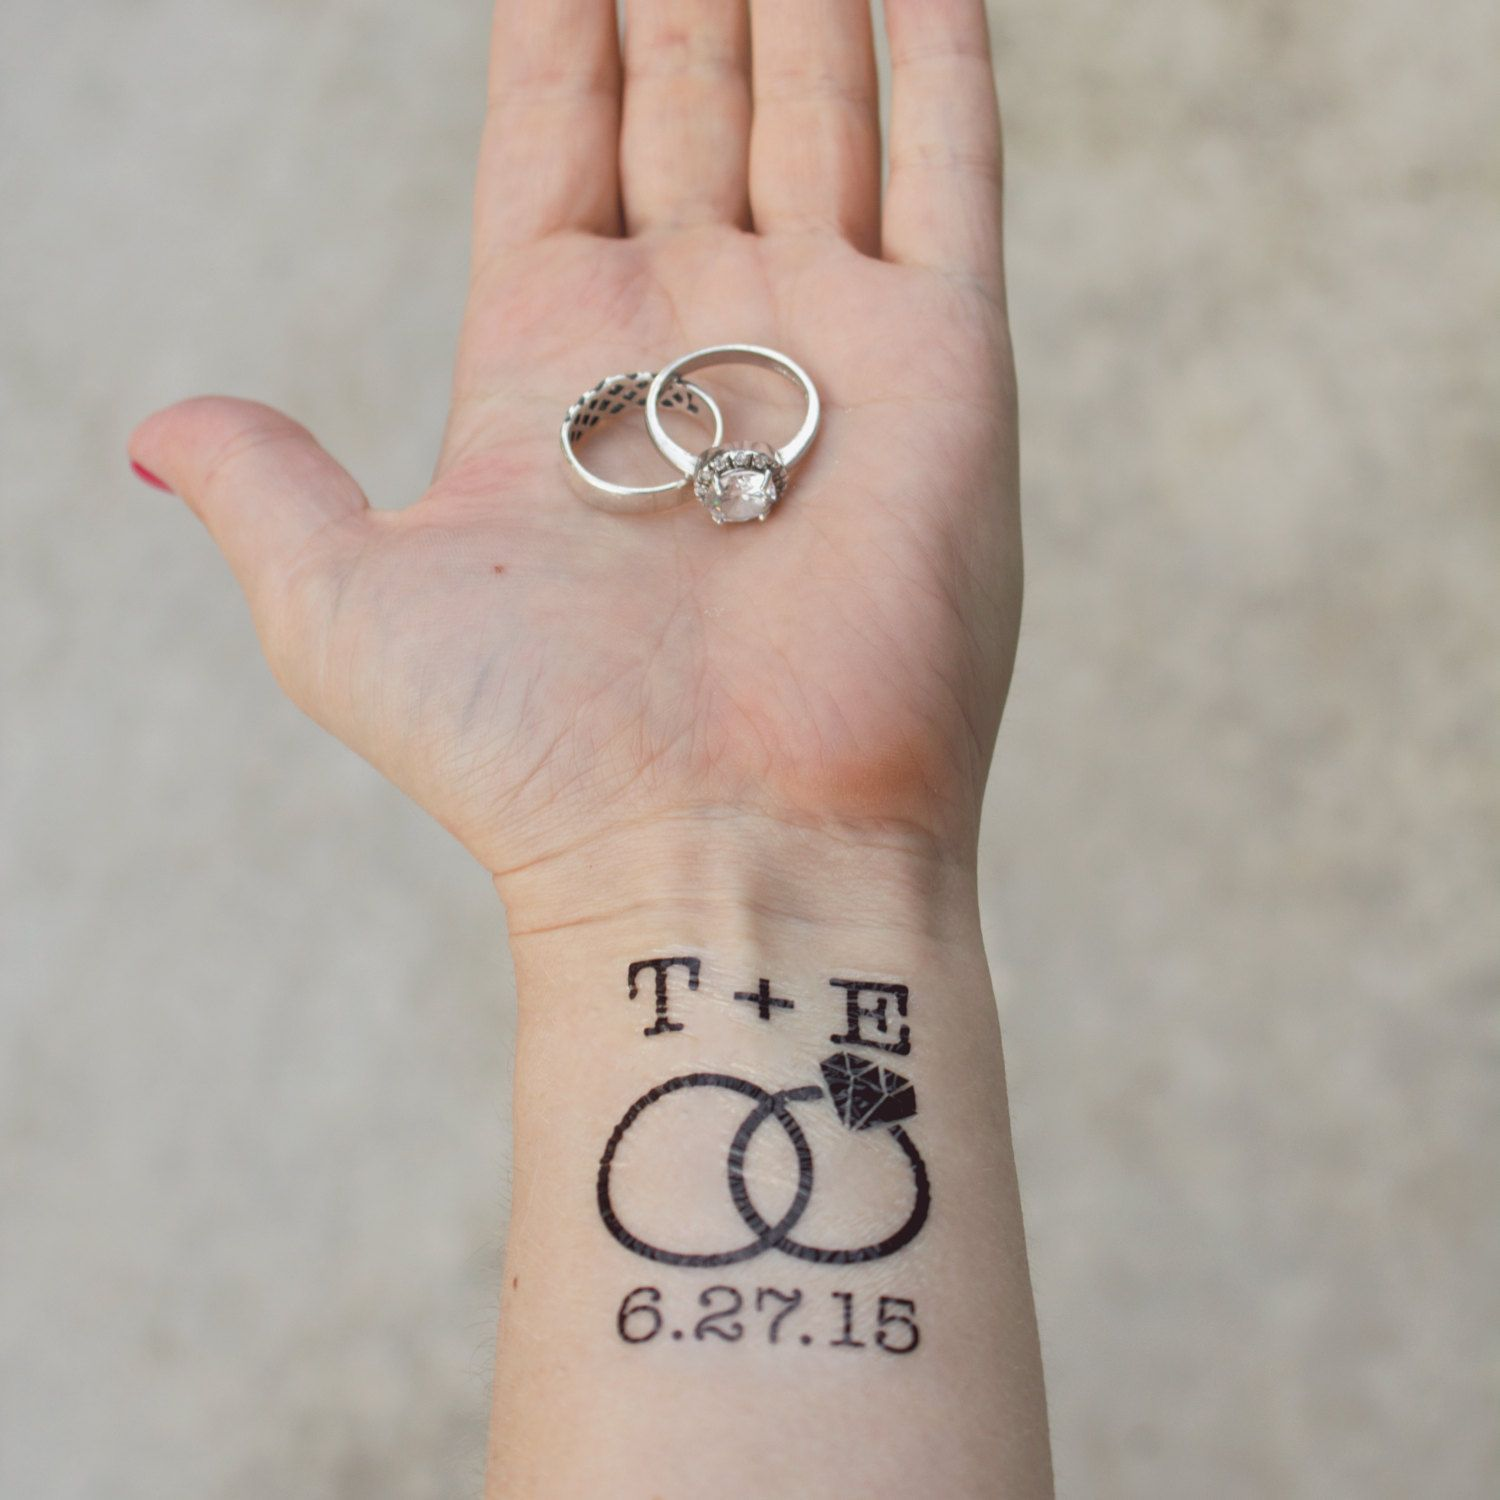 ring tattoos with initials Google Search Wedding date